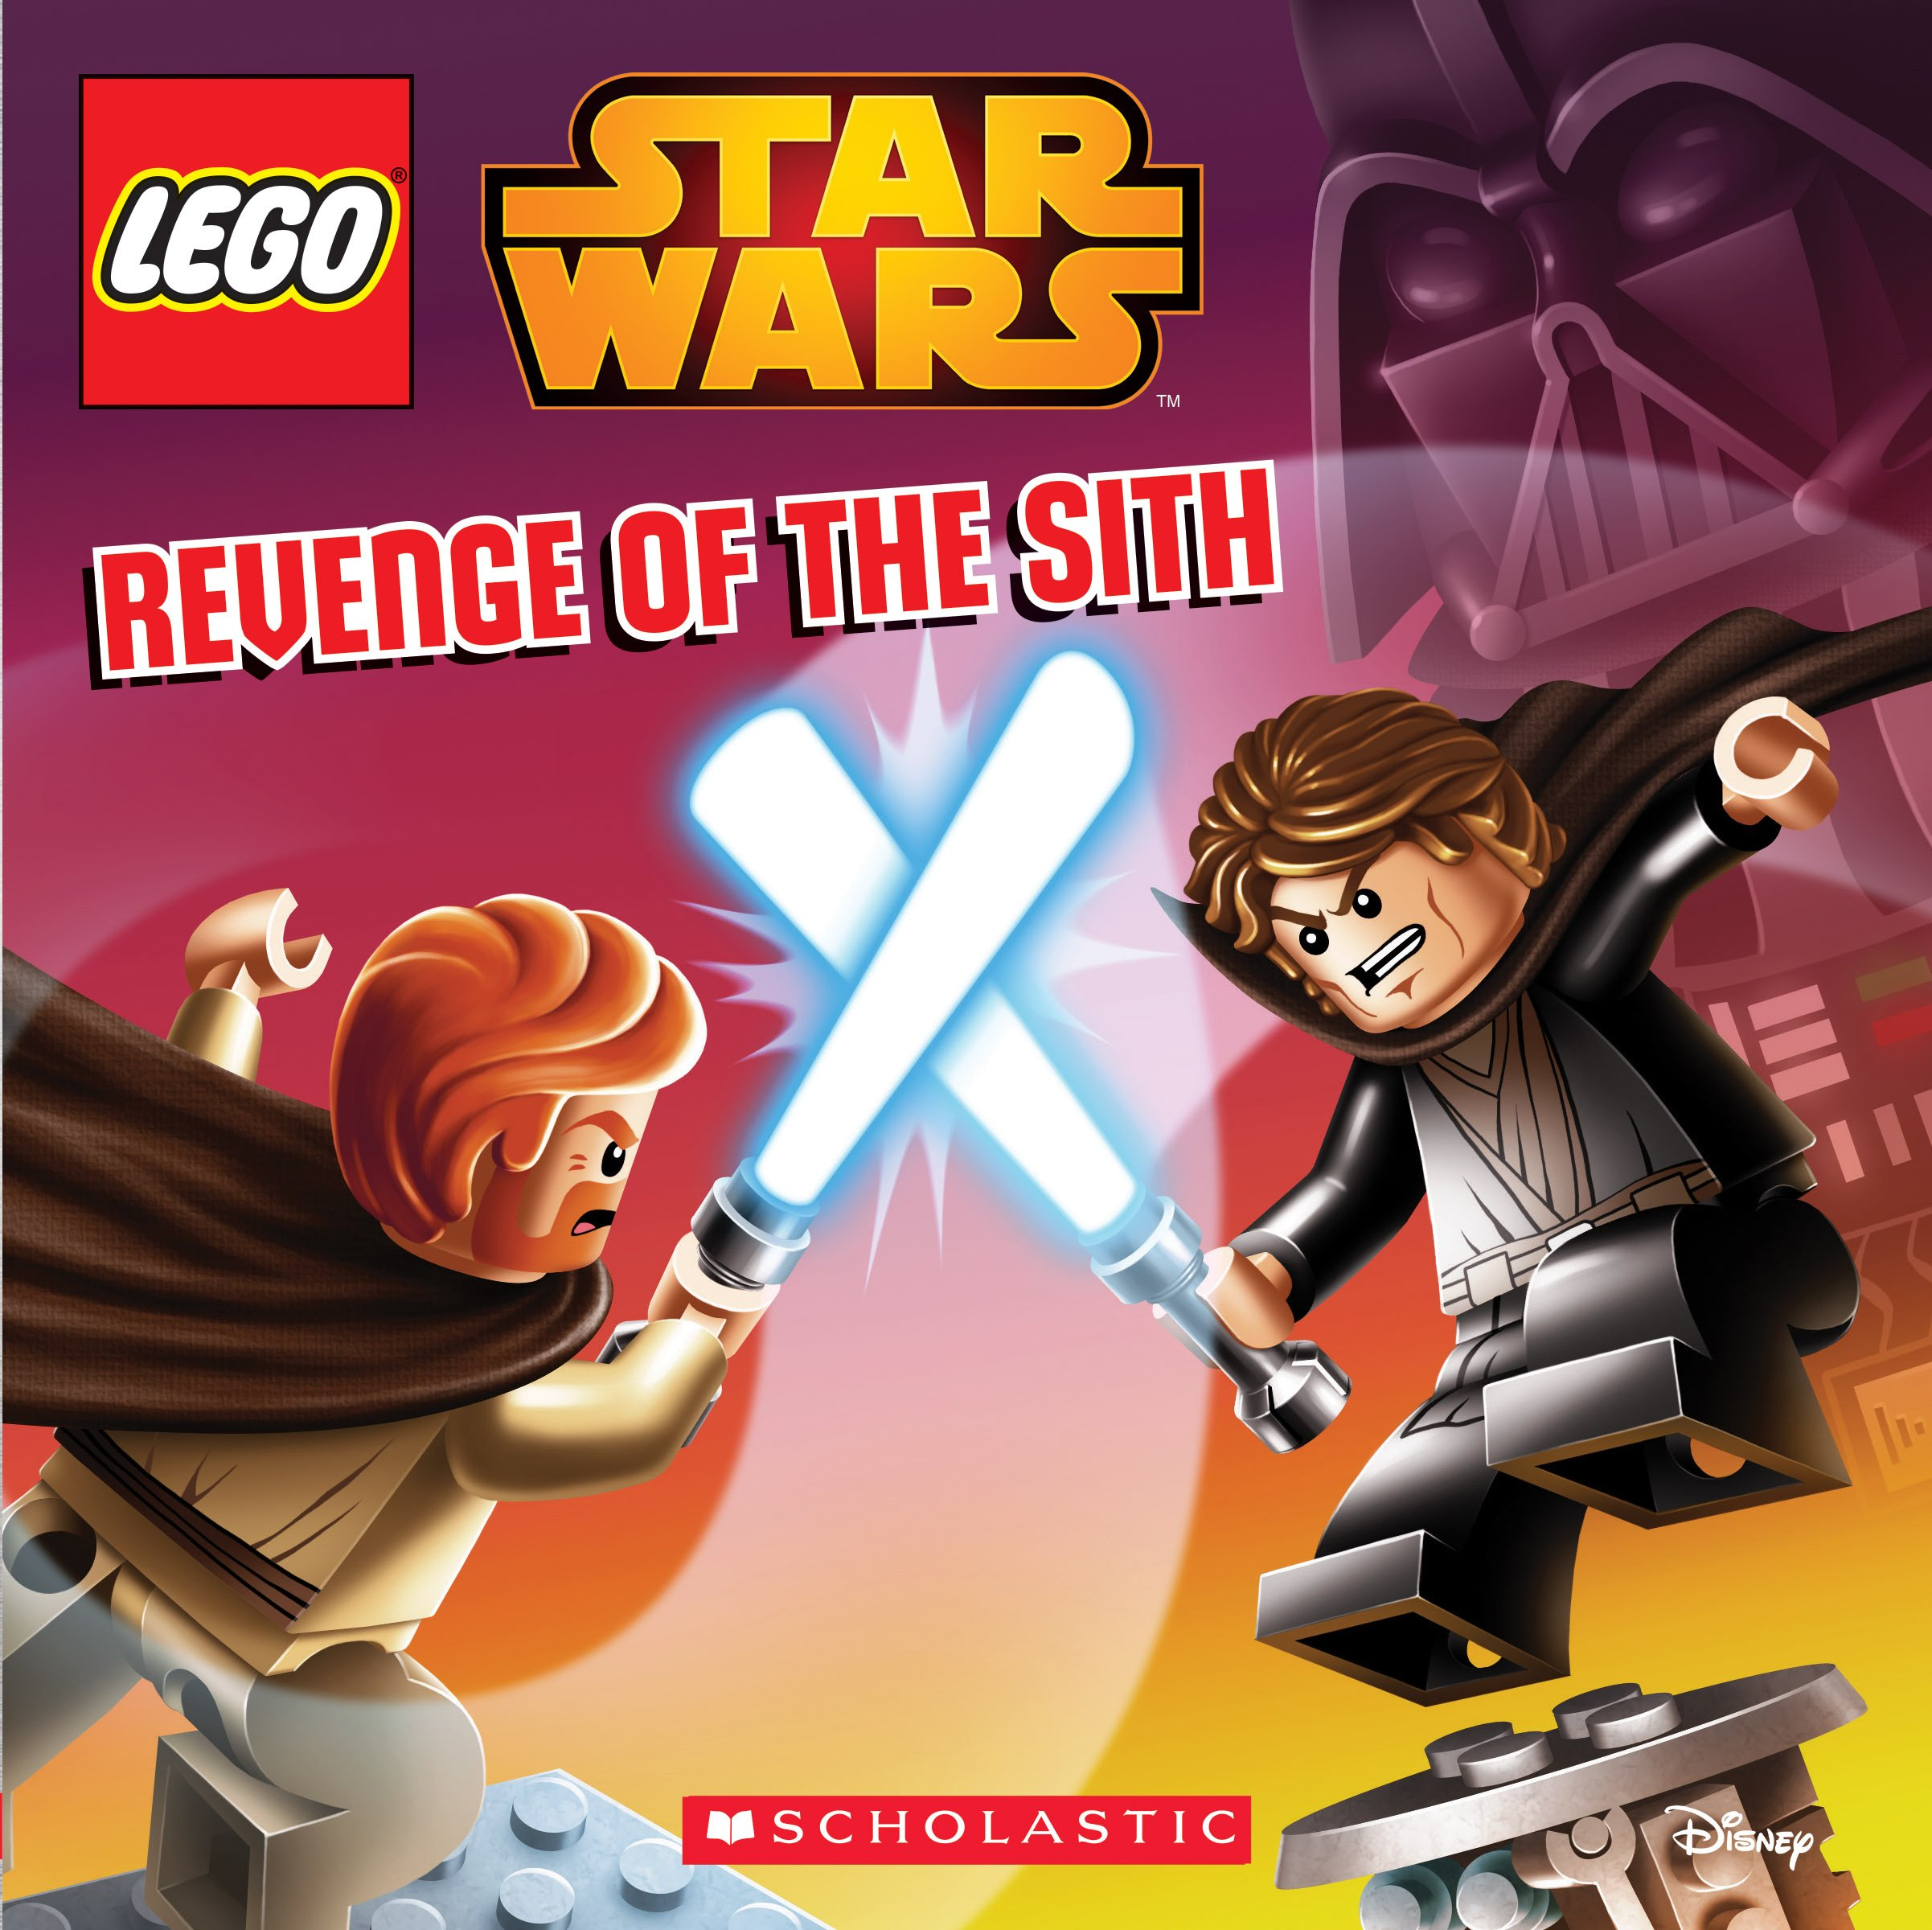 Revenge Of The Sith Episode Iii Lego Star Wars Landers Ace White David A 9780545785242 Amazon Com Books